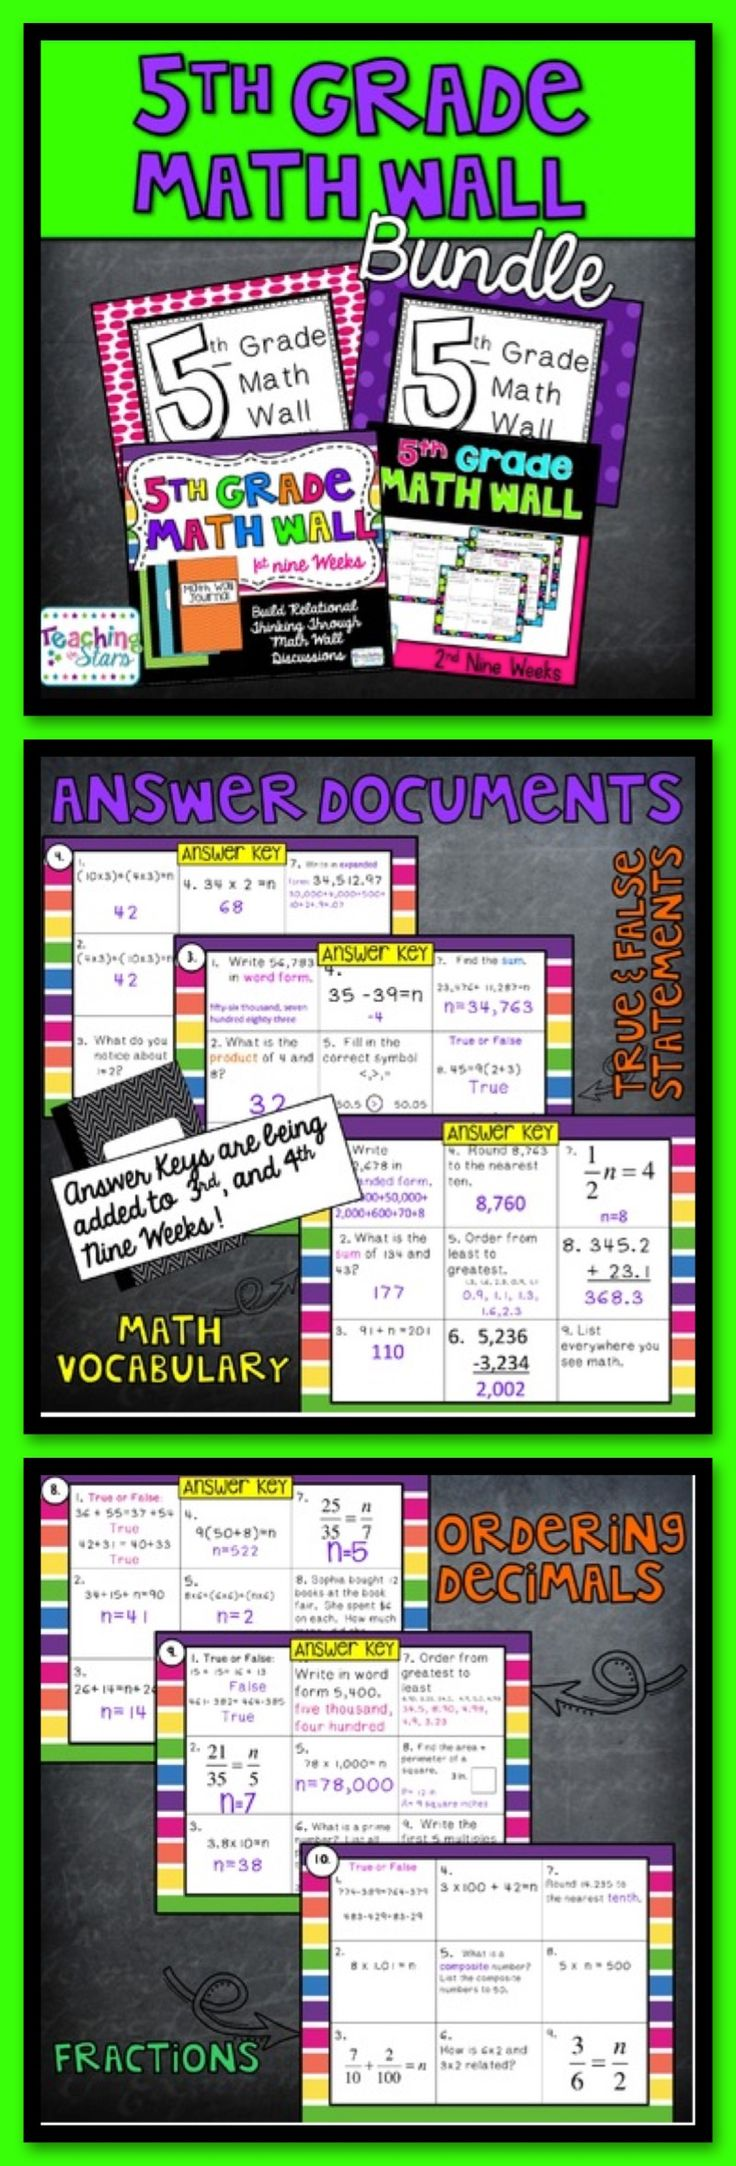 5th Grade Math Wall Bundle is packet of 4 nine weeks of a daily short math skills. The equations and true/false statements help build relational thinking. Decimals, fractions, and true and false statements are integrated throughout each nine weeks. Mode, medium, mean, and range are also covered. Class discussions and students modeling how they solved their problems will help build a strong mathematical foundation for algebra.